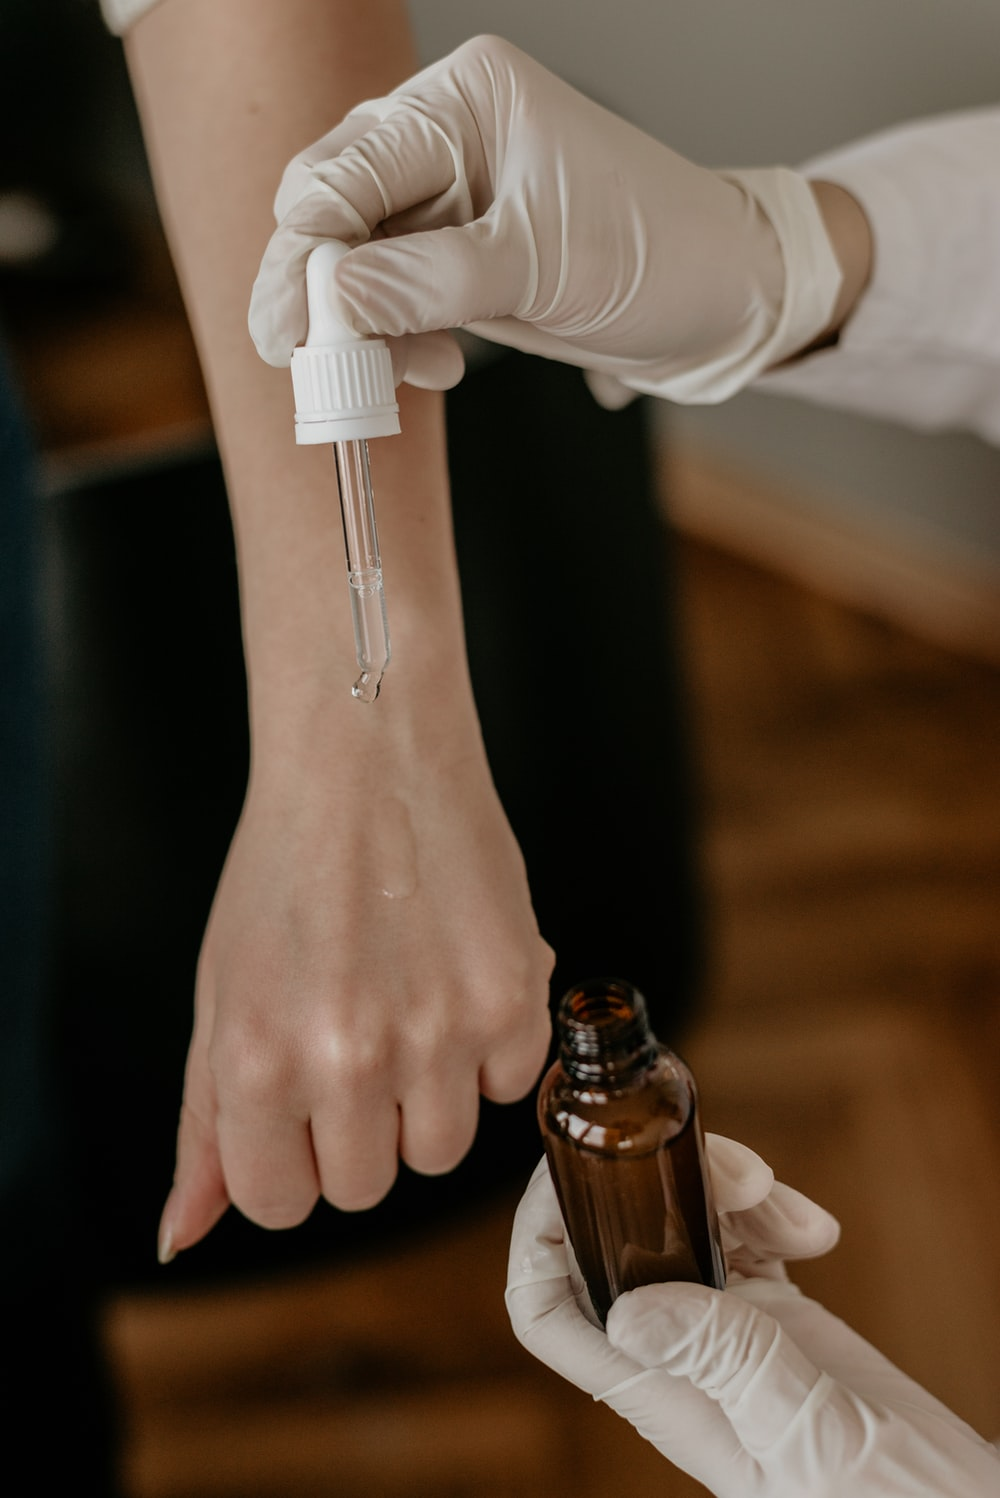 person with white gloves holding drop bottle pointing on another person's hand